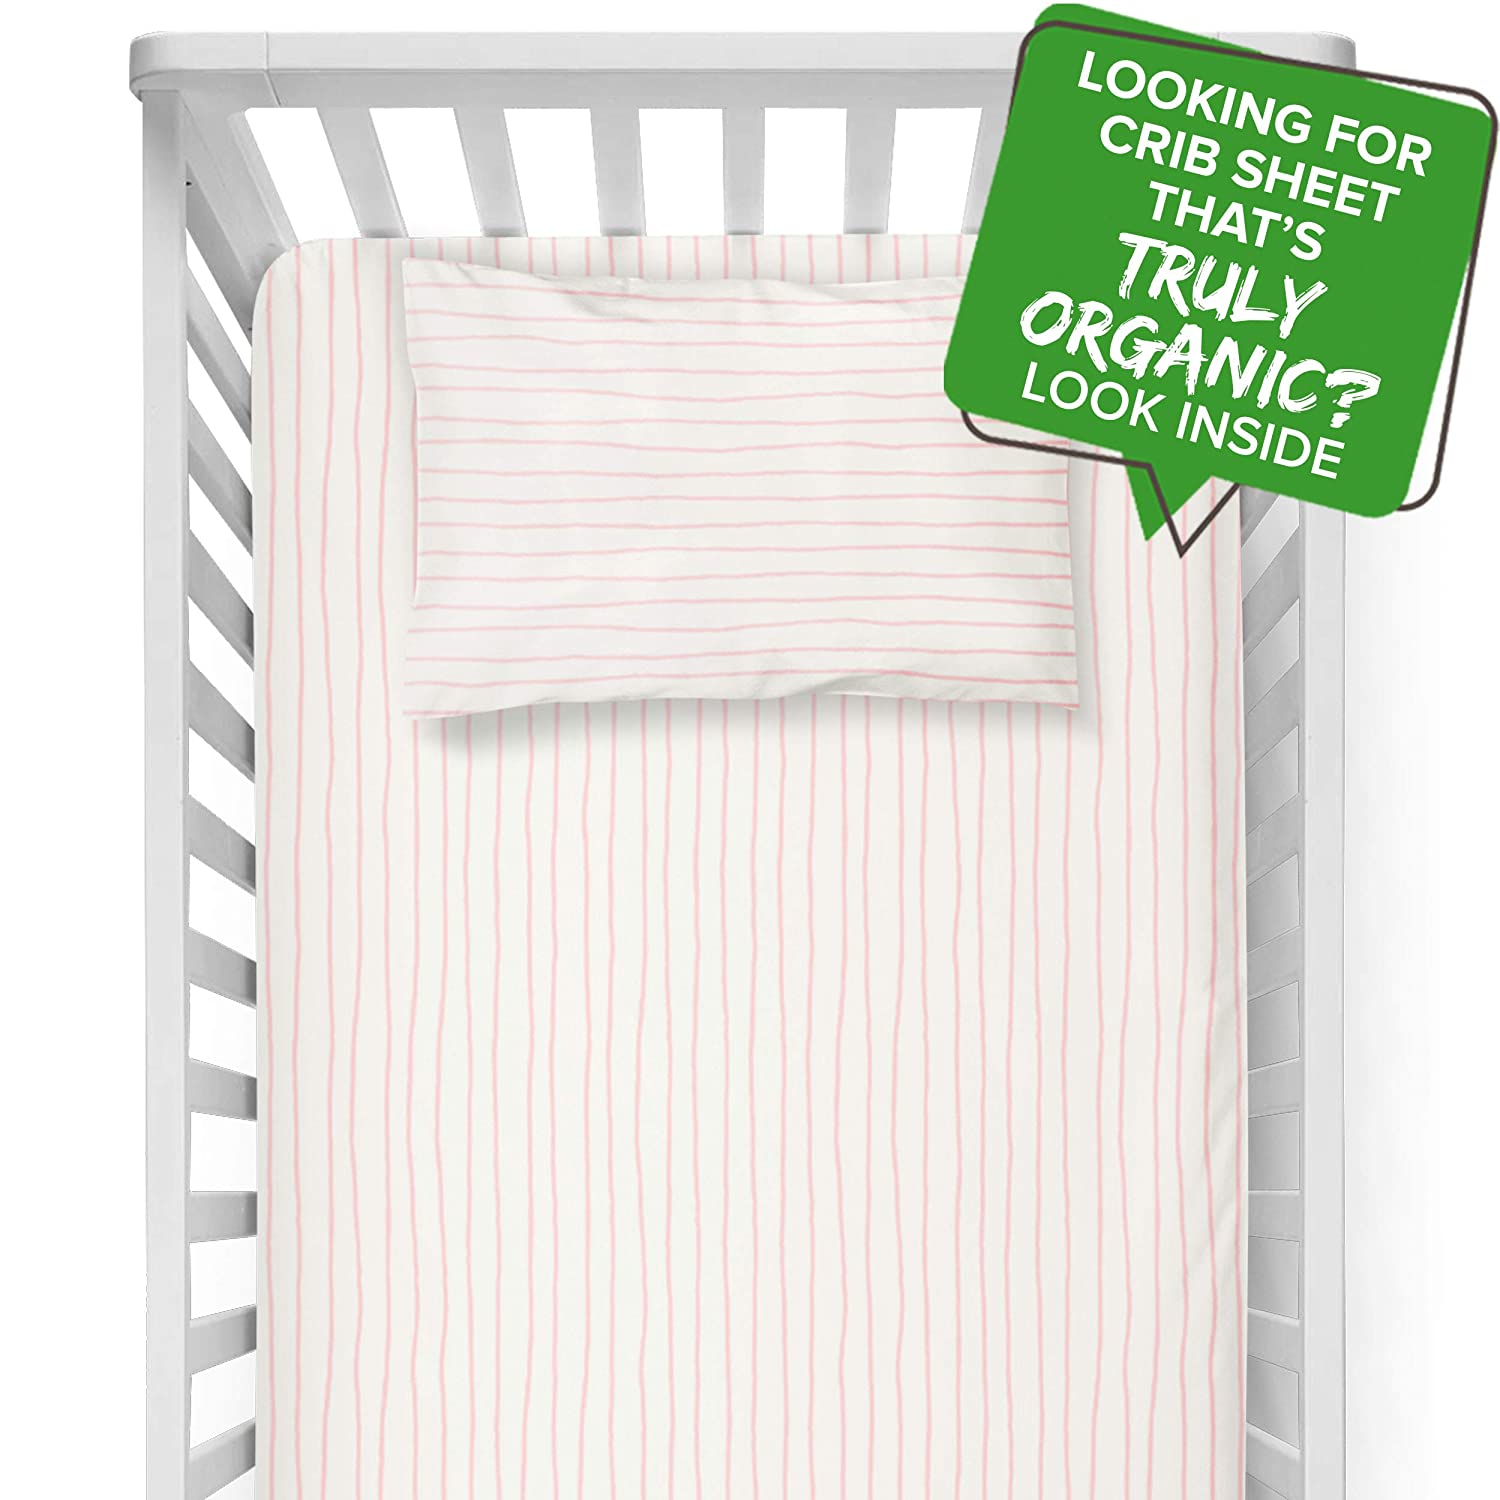 Organic Crib Sheet Fitted GOTS Certified Organic Cotton Crib Fitted Sheet with Pillowcase Super Soft Breathable Non Toxic Hypoallergenic Baby Toddler Girl Bed Fitted Crib Sheet (Pink, Stripes)